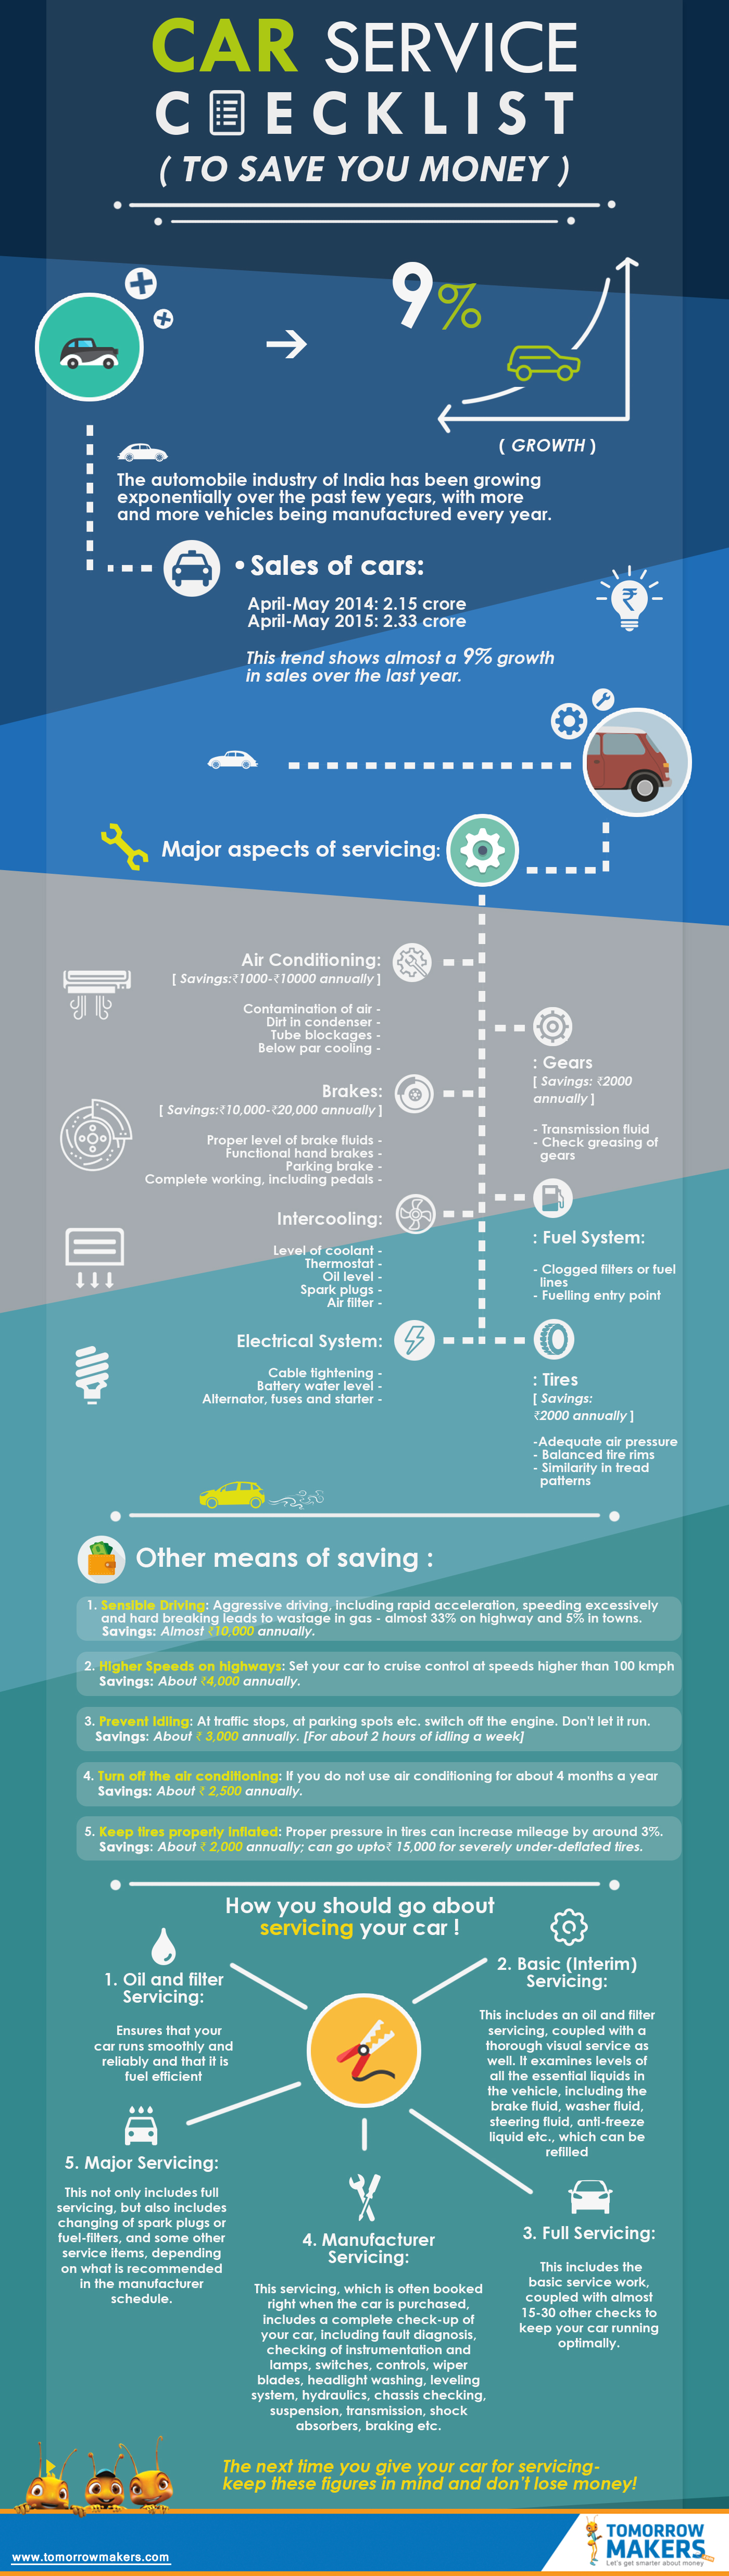 car-service-checklist-to-save-your-money-infographic